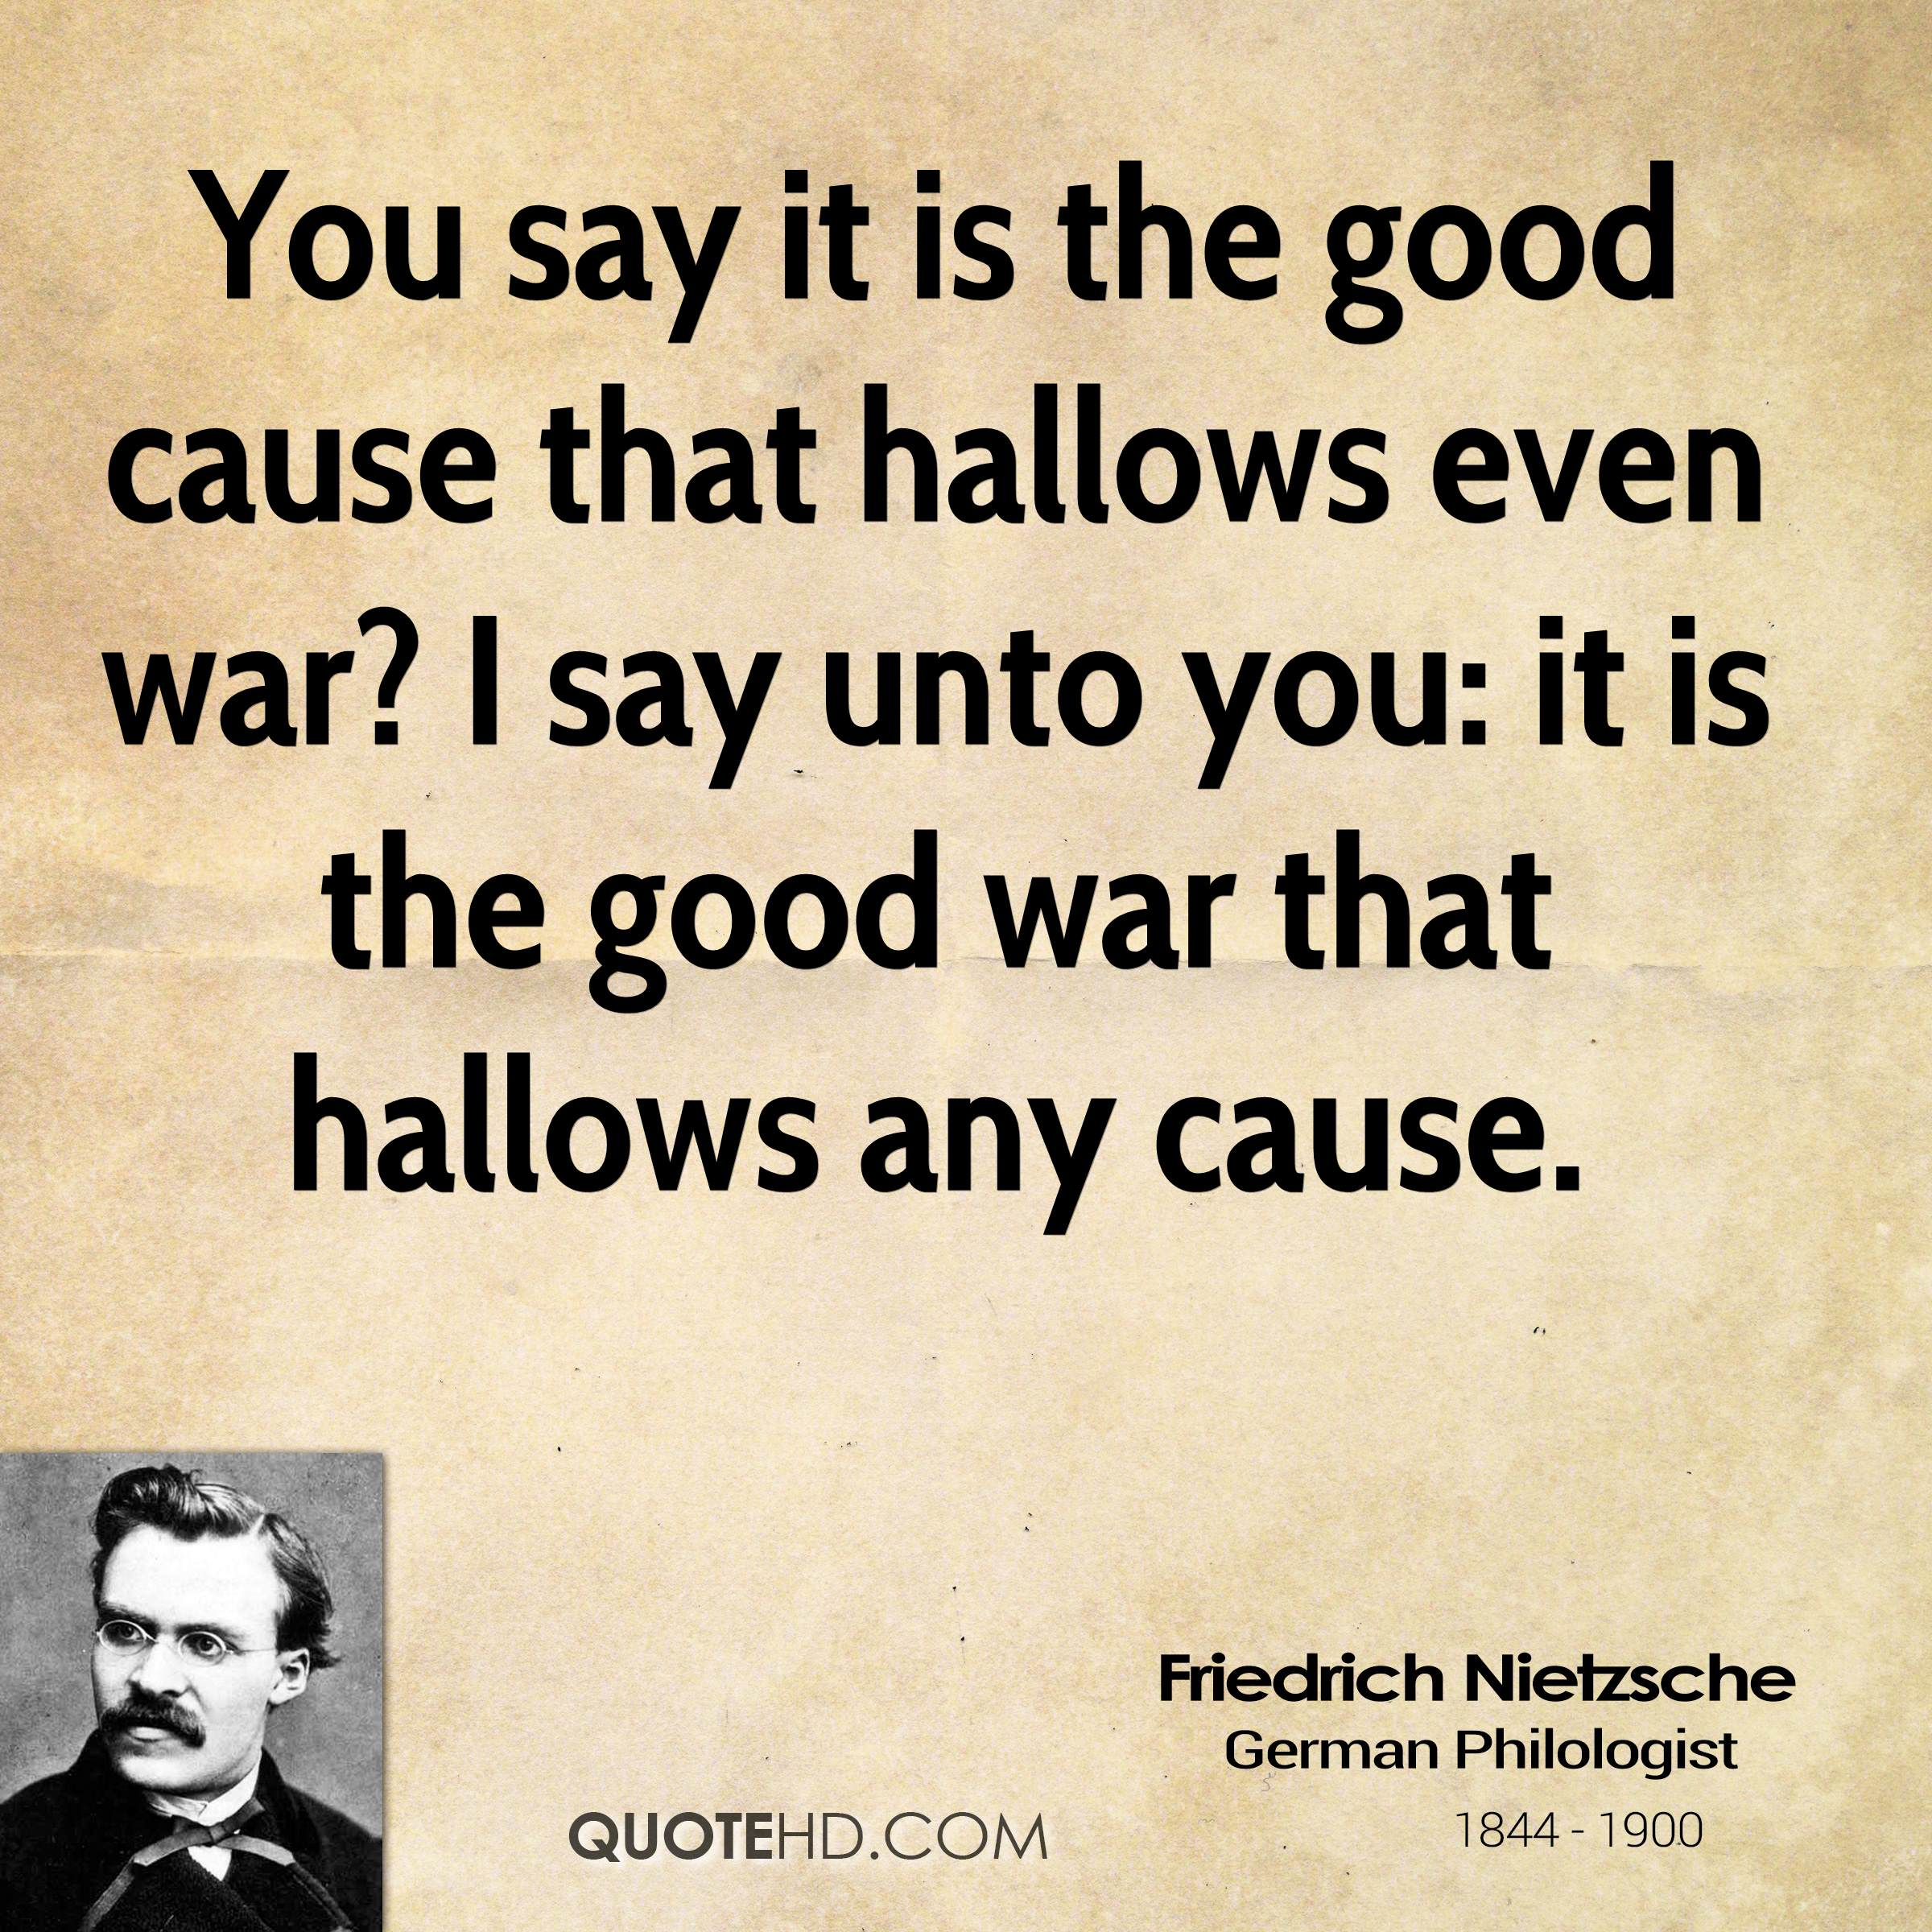 You say it is the good cause that hallows even war? I say unto you: it is the good war that hallows any cause.